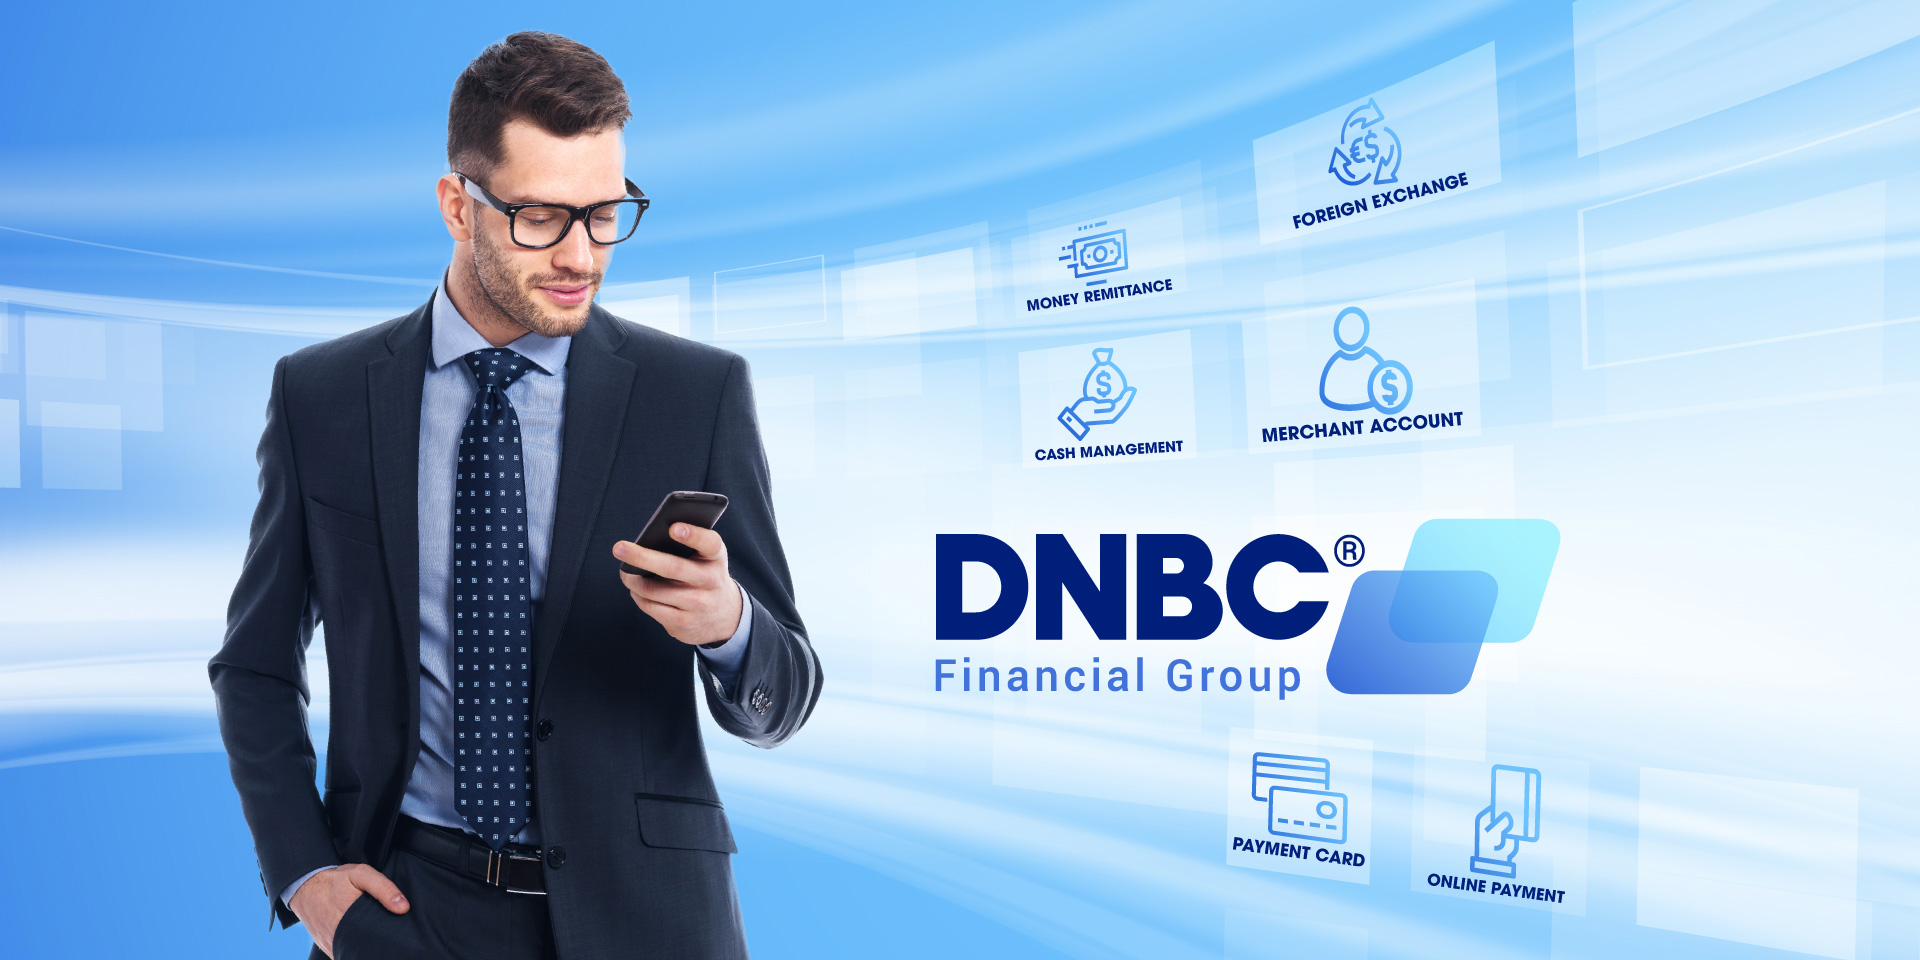 Digital Banking Start-Up DNBC Financial Group Brings Quality Experience to Customers All Over the World